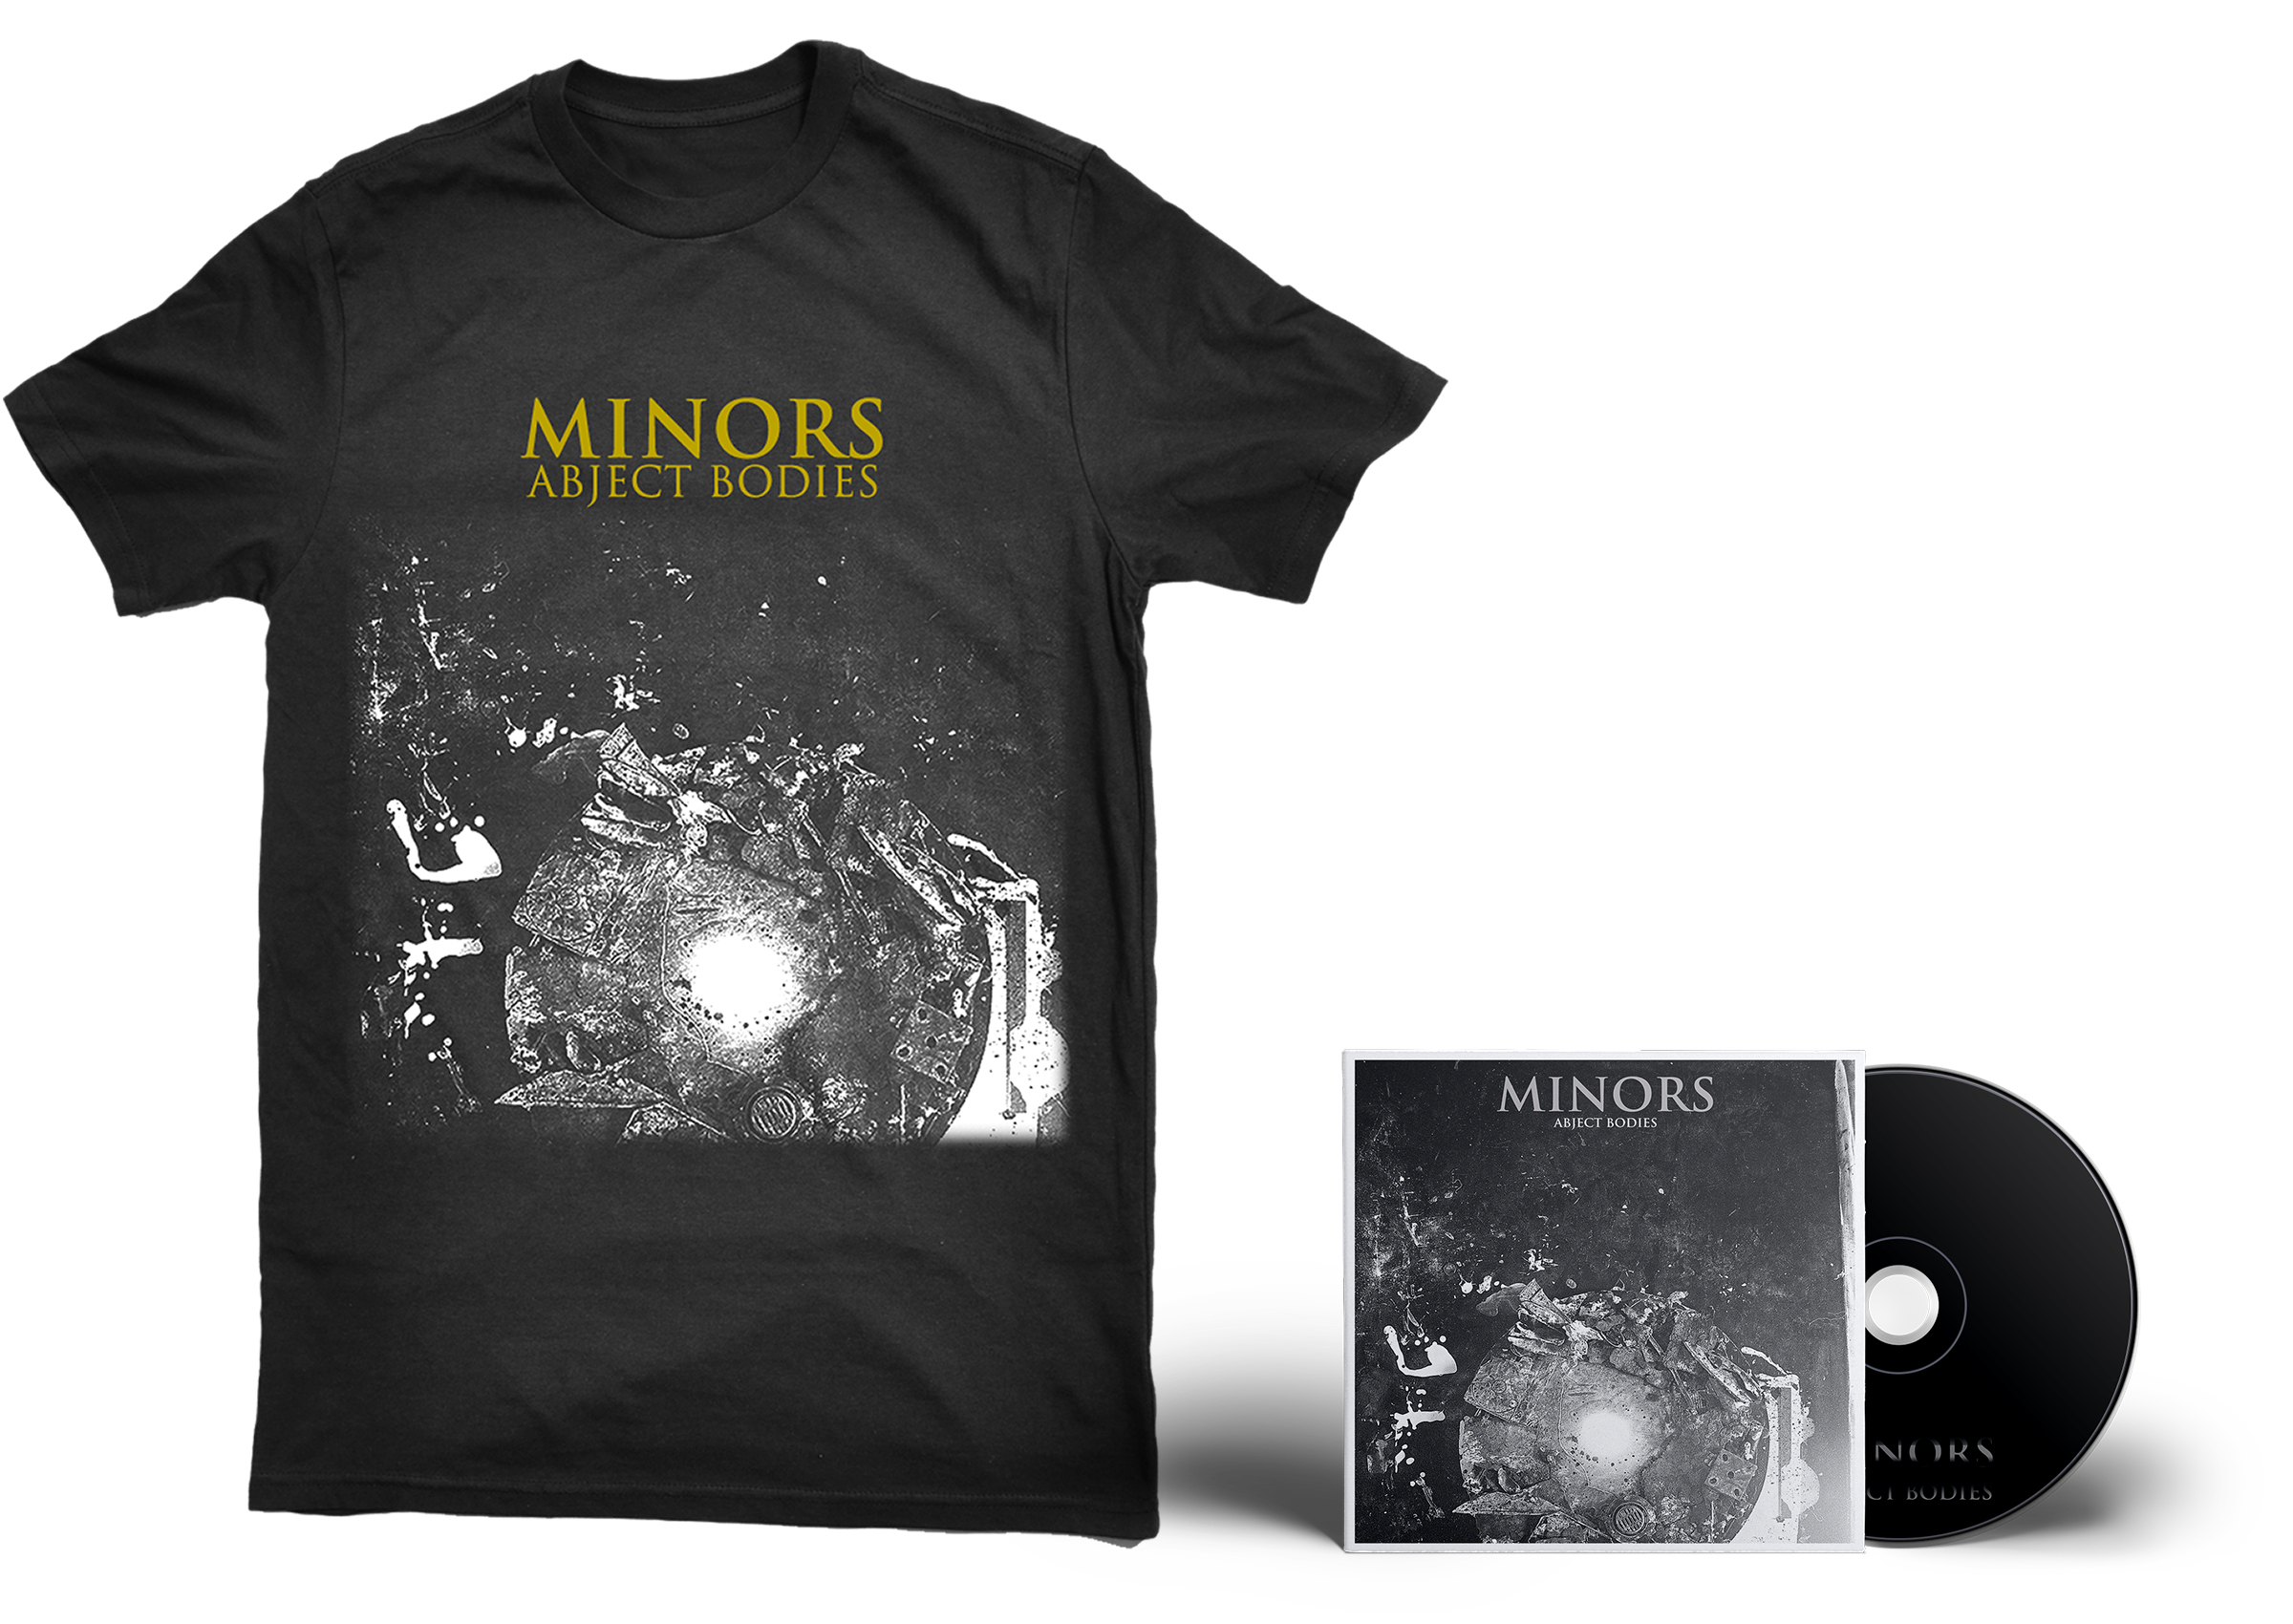 Minors - Abject Bodies shirt + CD PREORDER